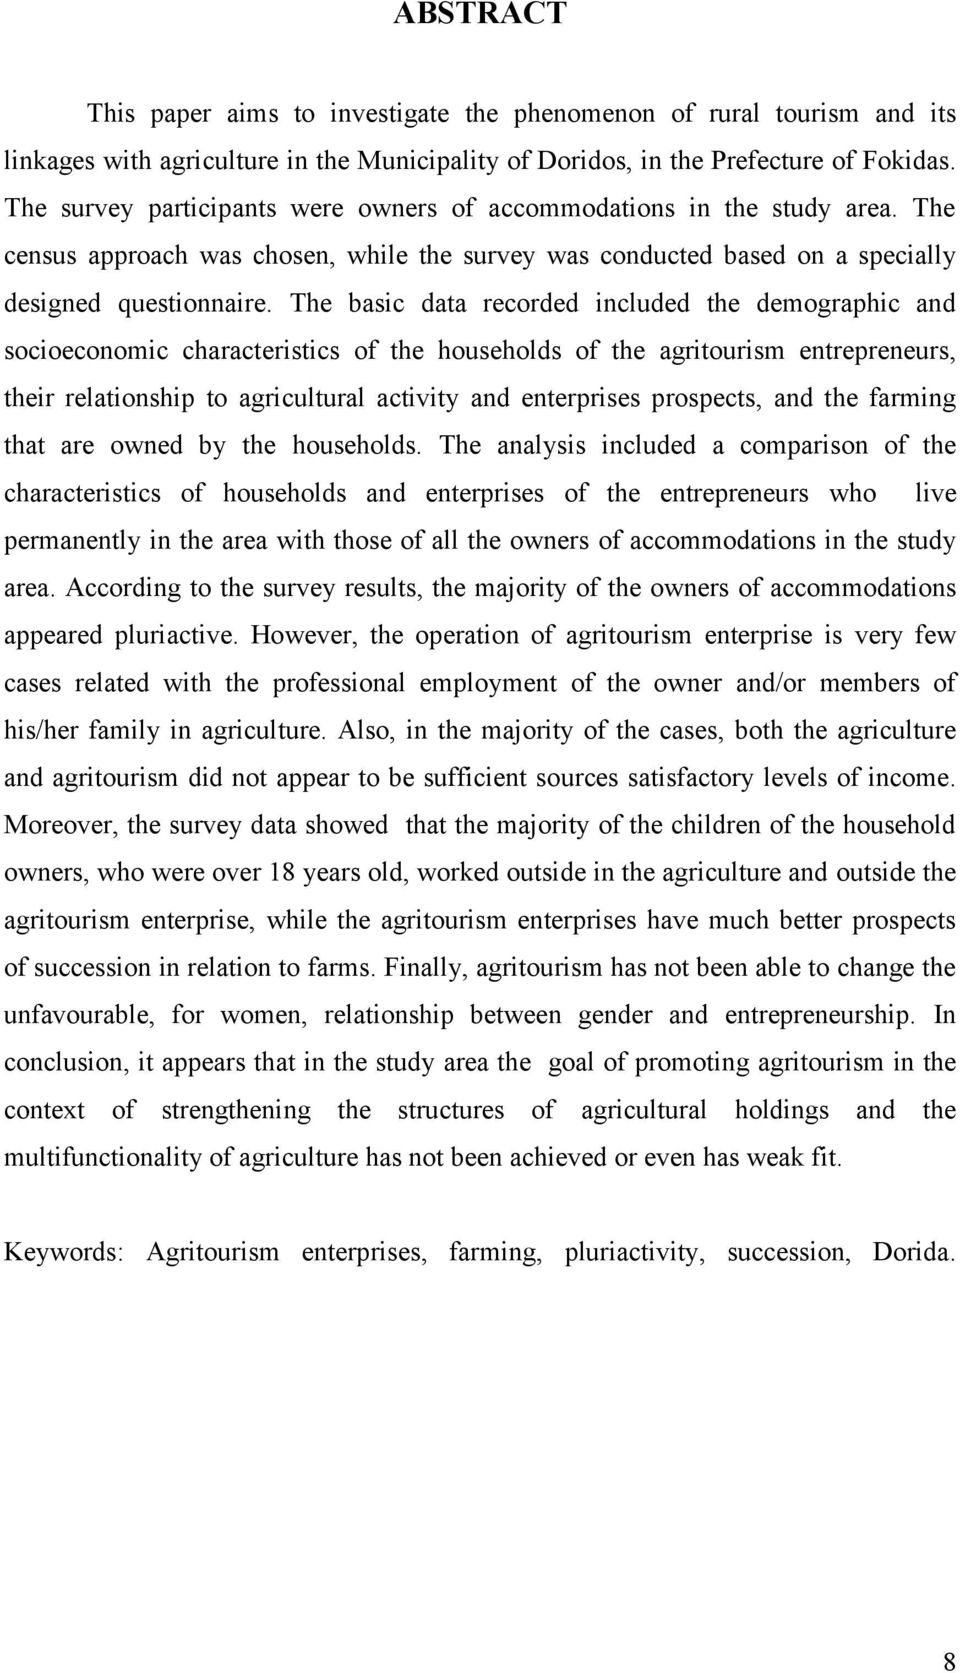 The basic data recorded included the demographic and socioeconomic characteristics of the households of the agritourism entrepreneurs, their relationship to agricultural activity and enterprises